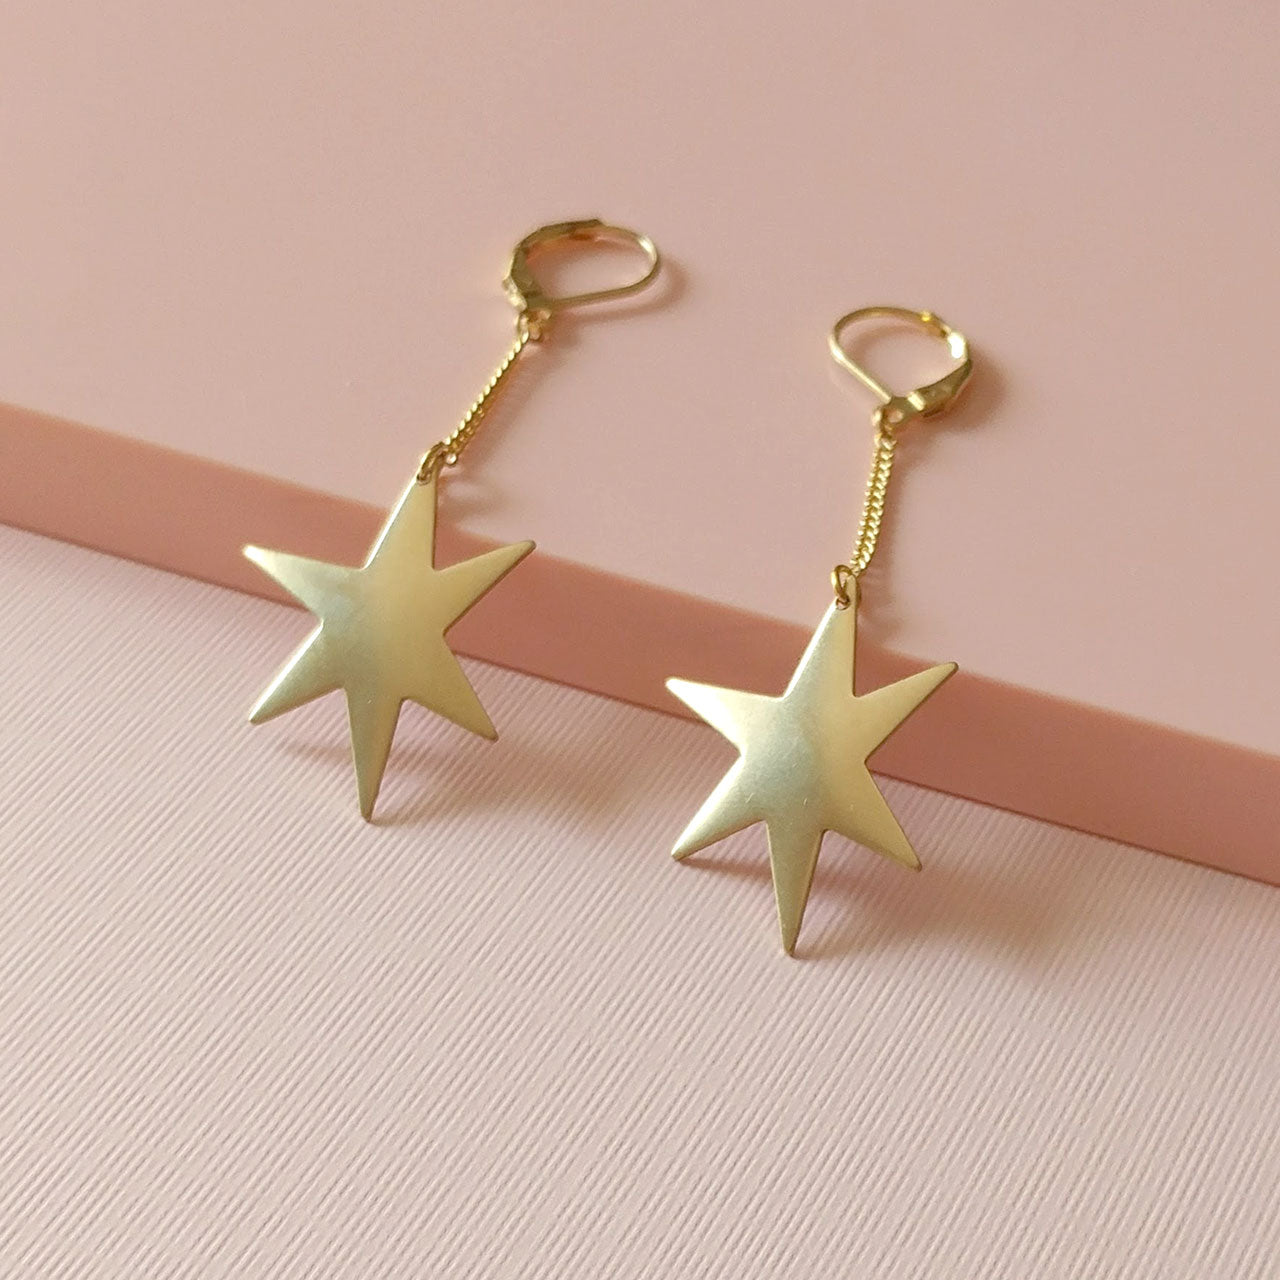 large star earring pendants